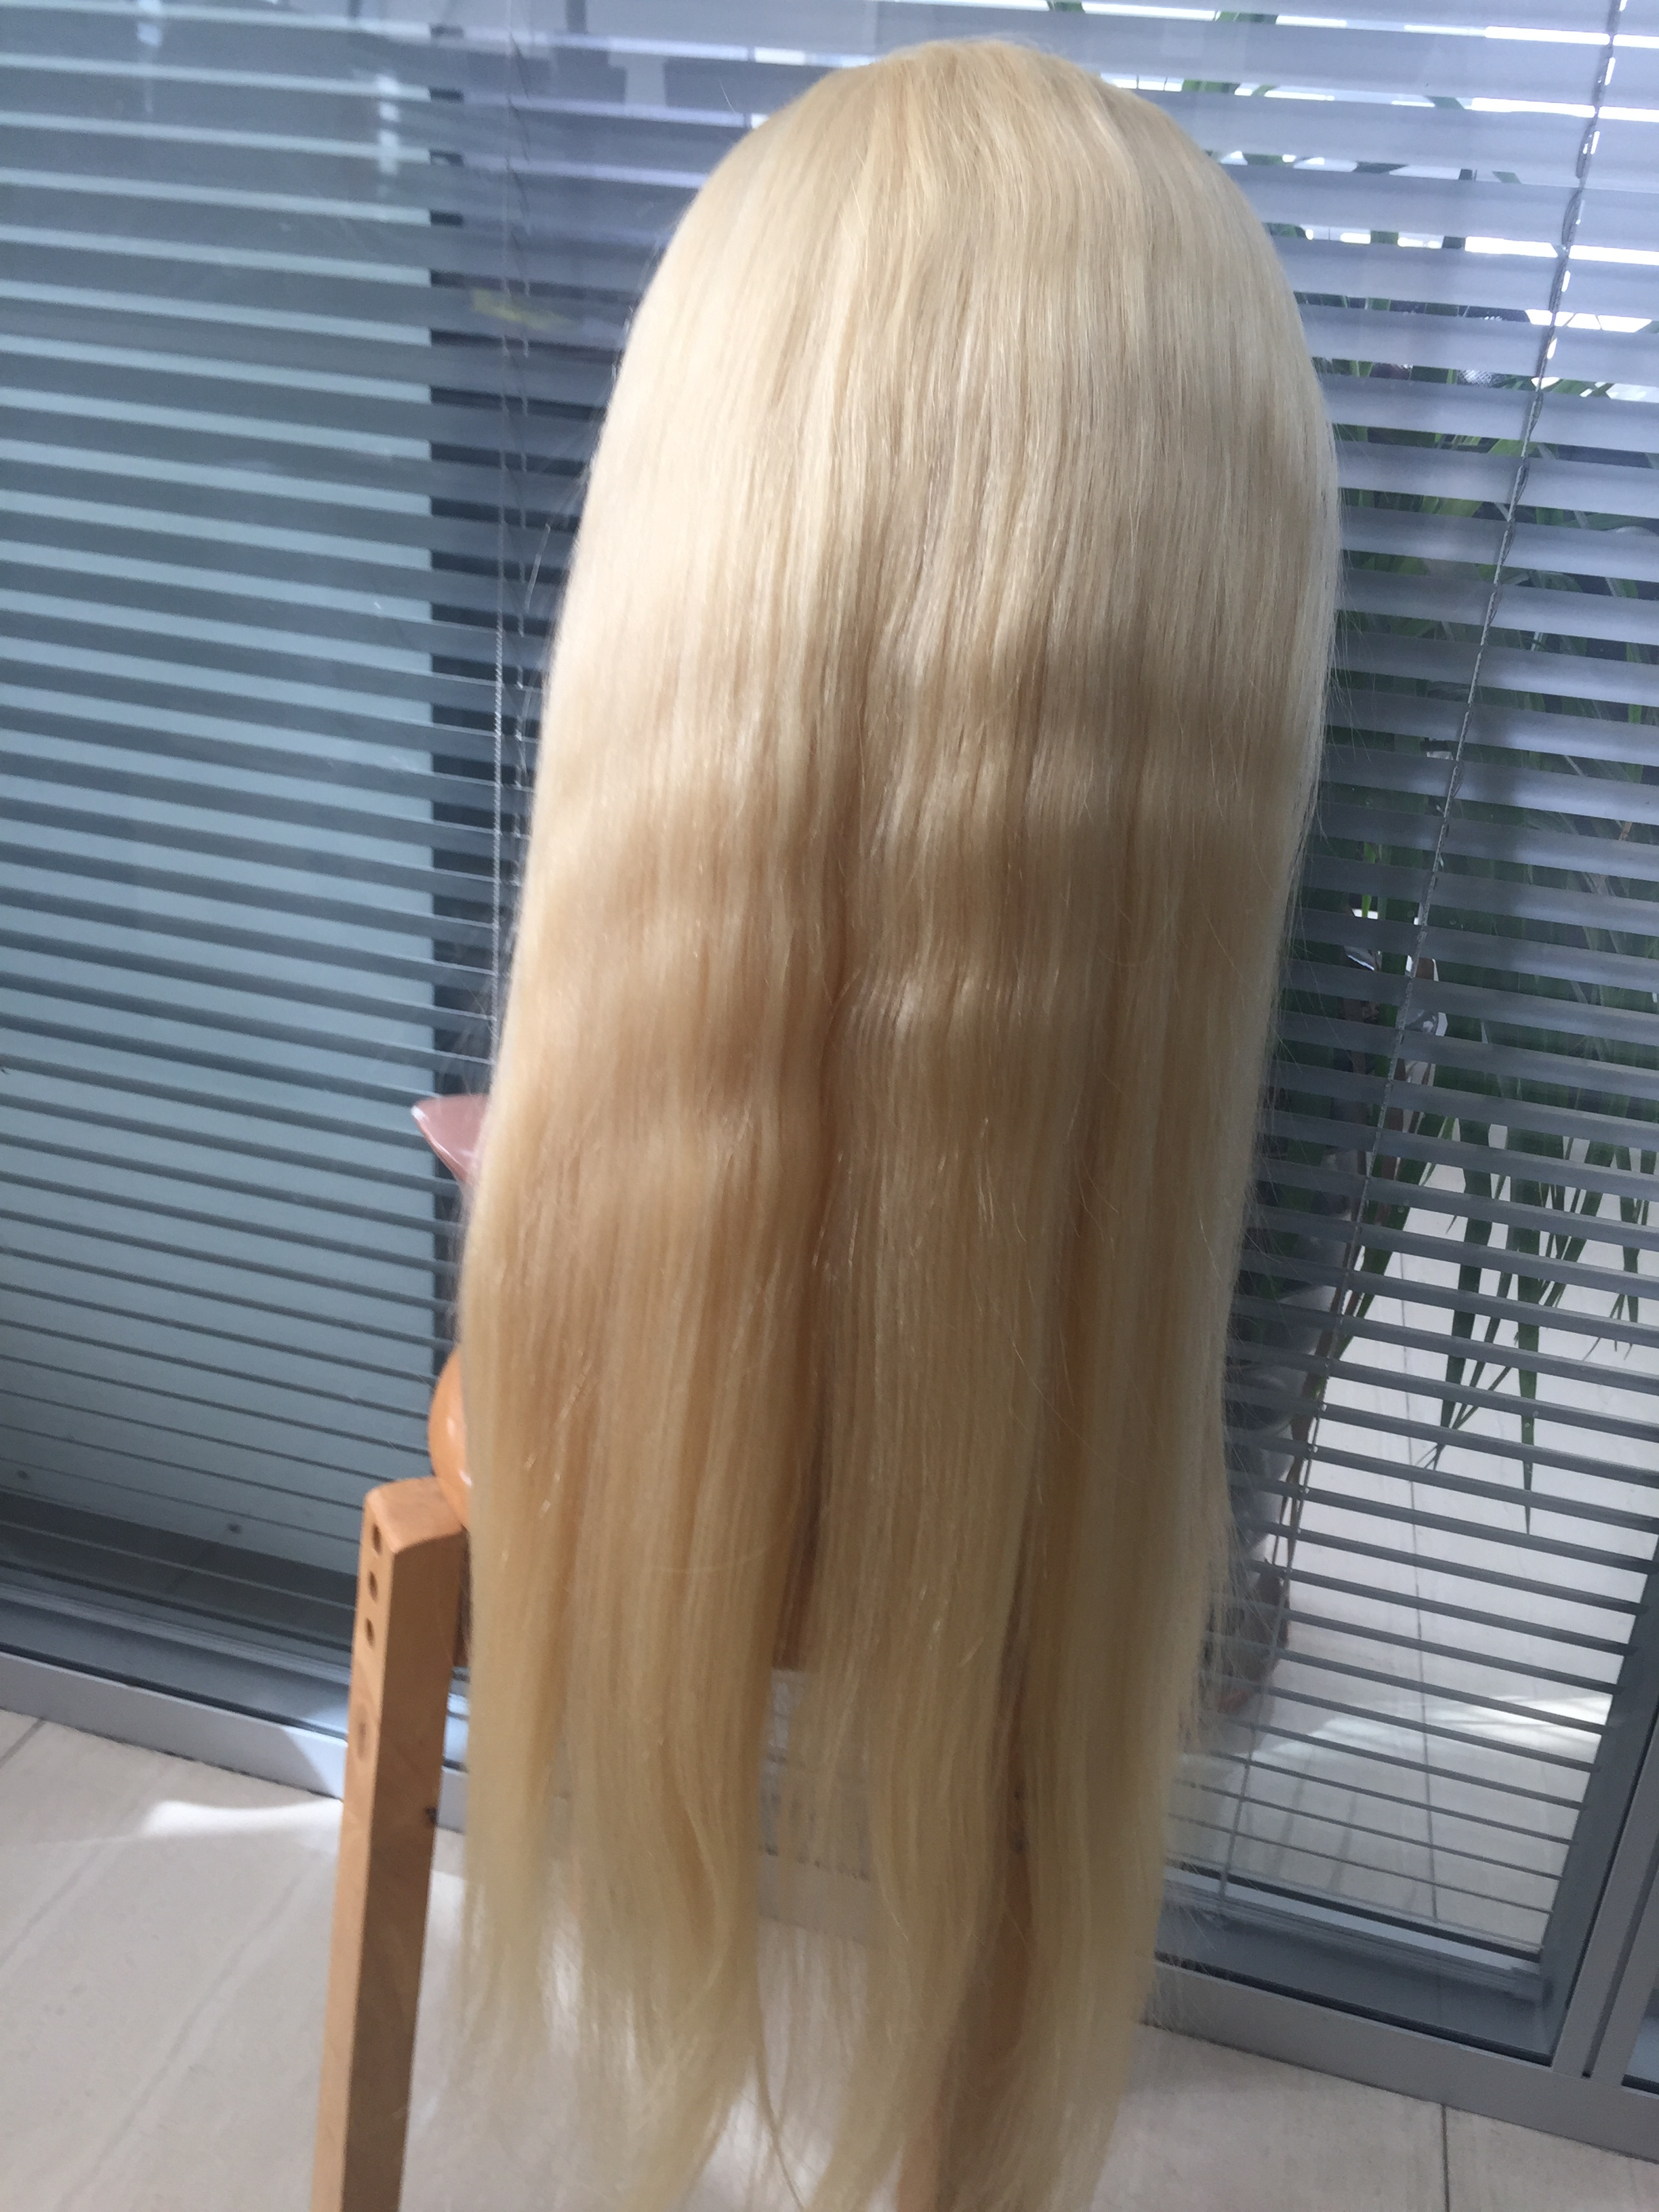 Blonde wigs one donor hair best quality hair full lace and lace front wigs for women YL219